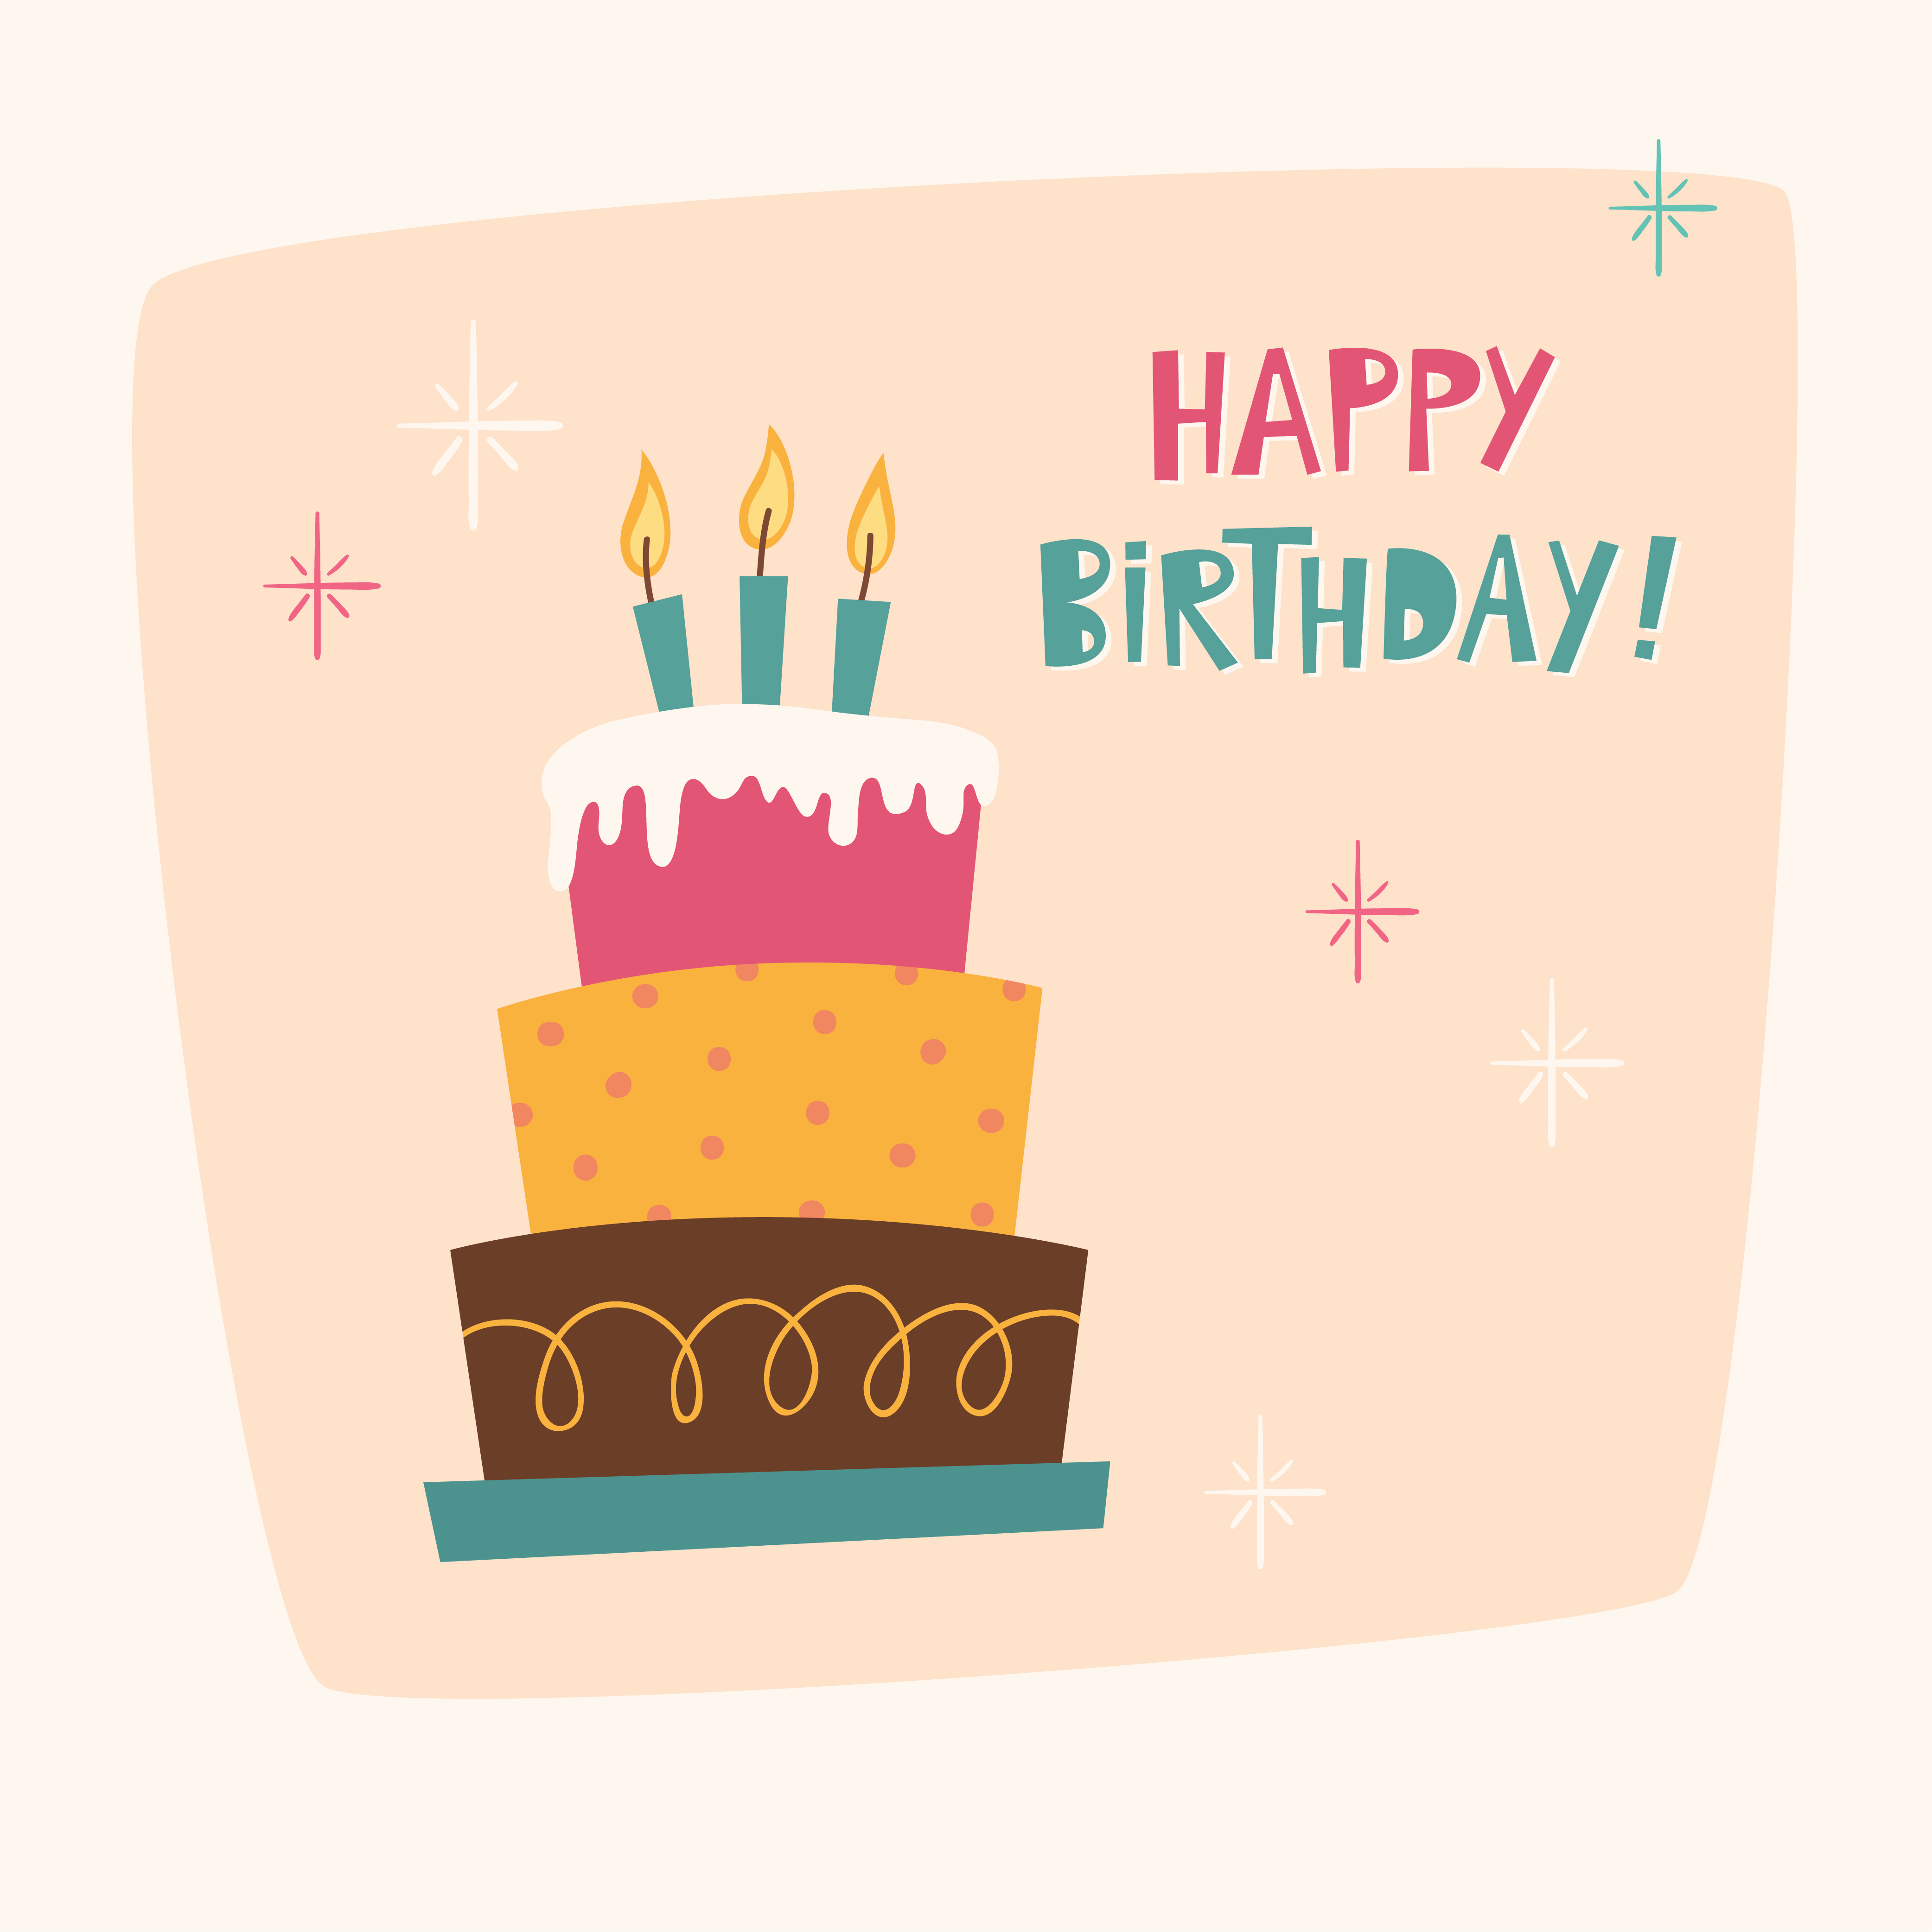 Happy Birthday Card With Cake Photoshop Vectors Brushlovers Com